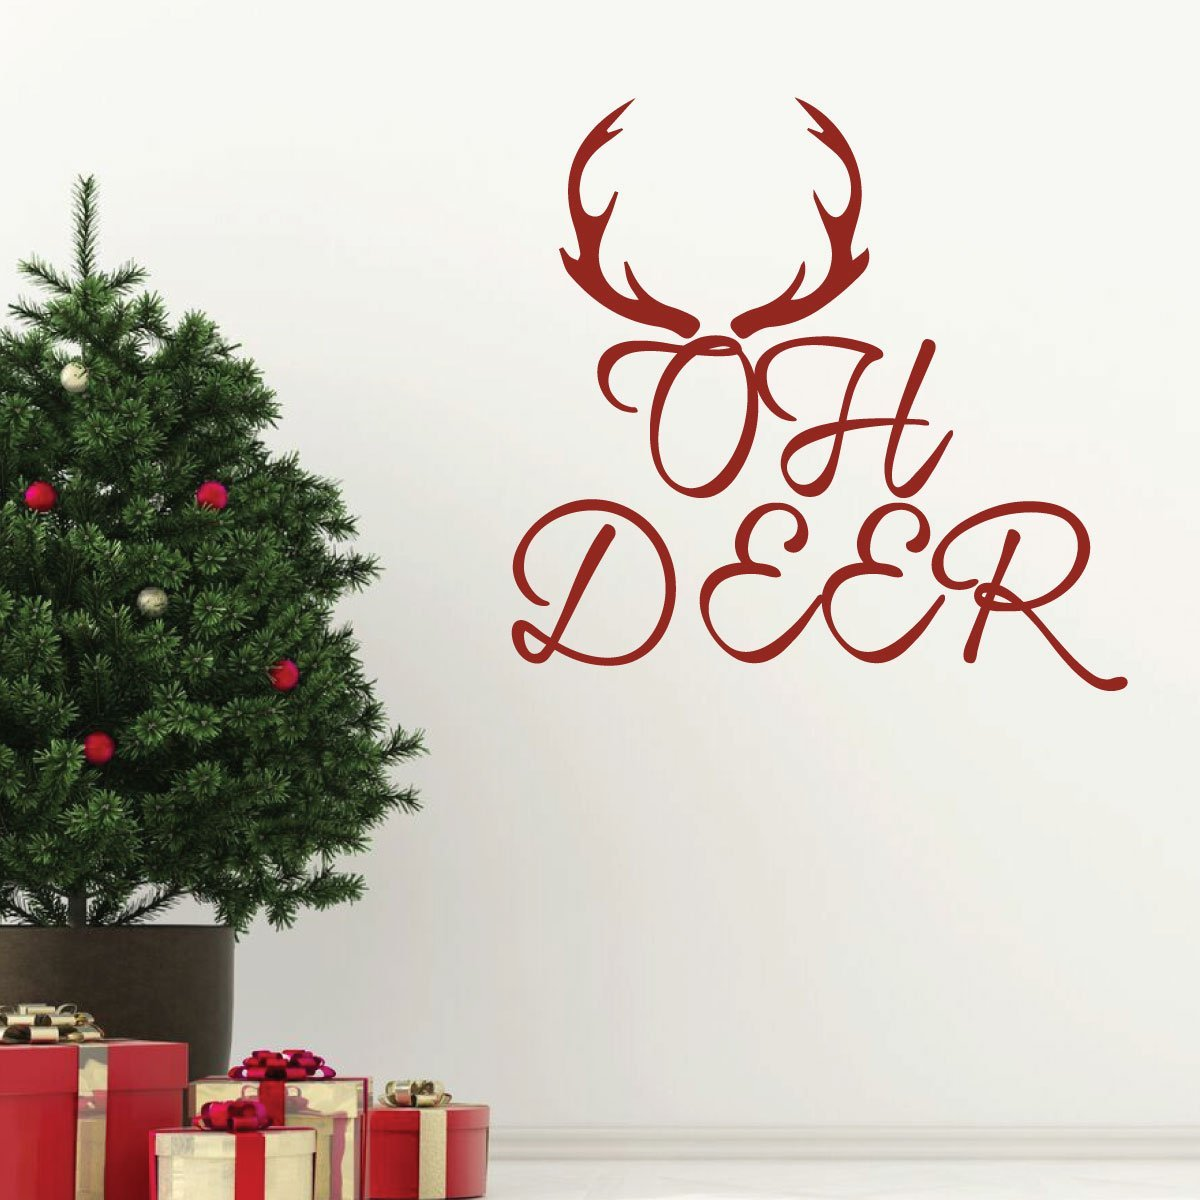 Christmas Wall Decals Removable.Christmas Wall Decals Oh Vinyl Decor Wall Decal